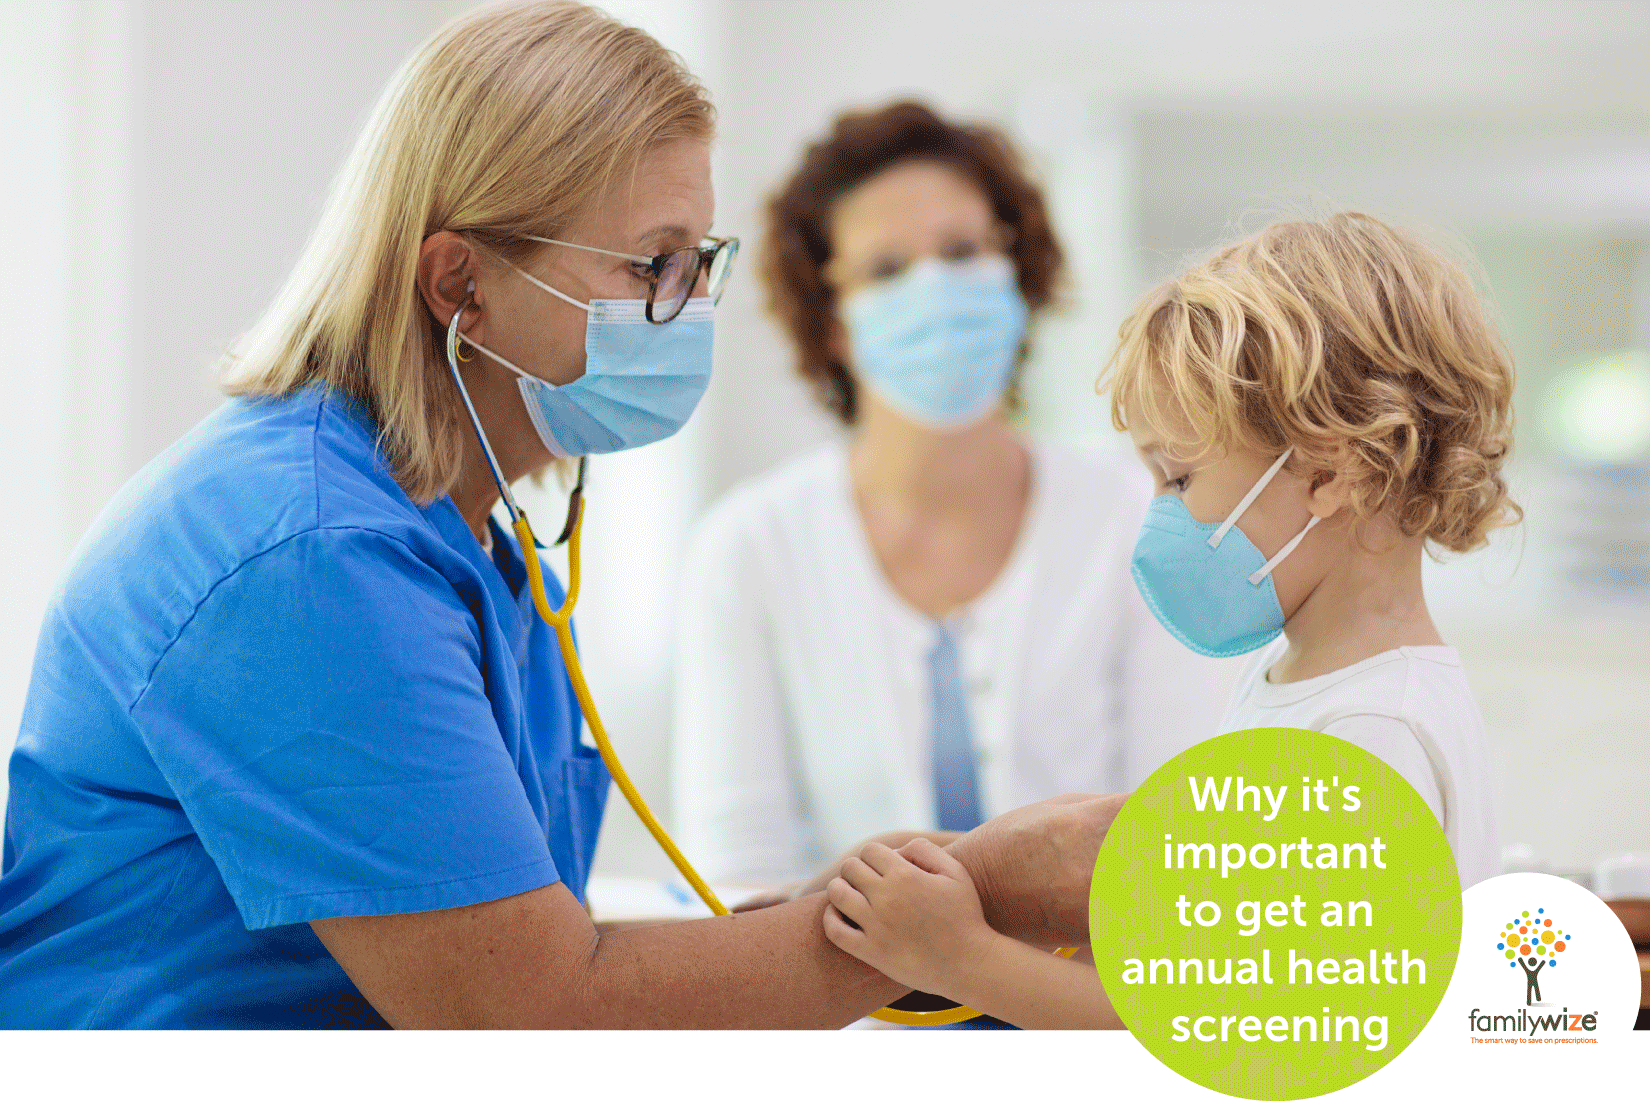 Importance of a health screening